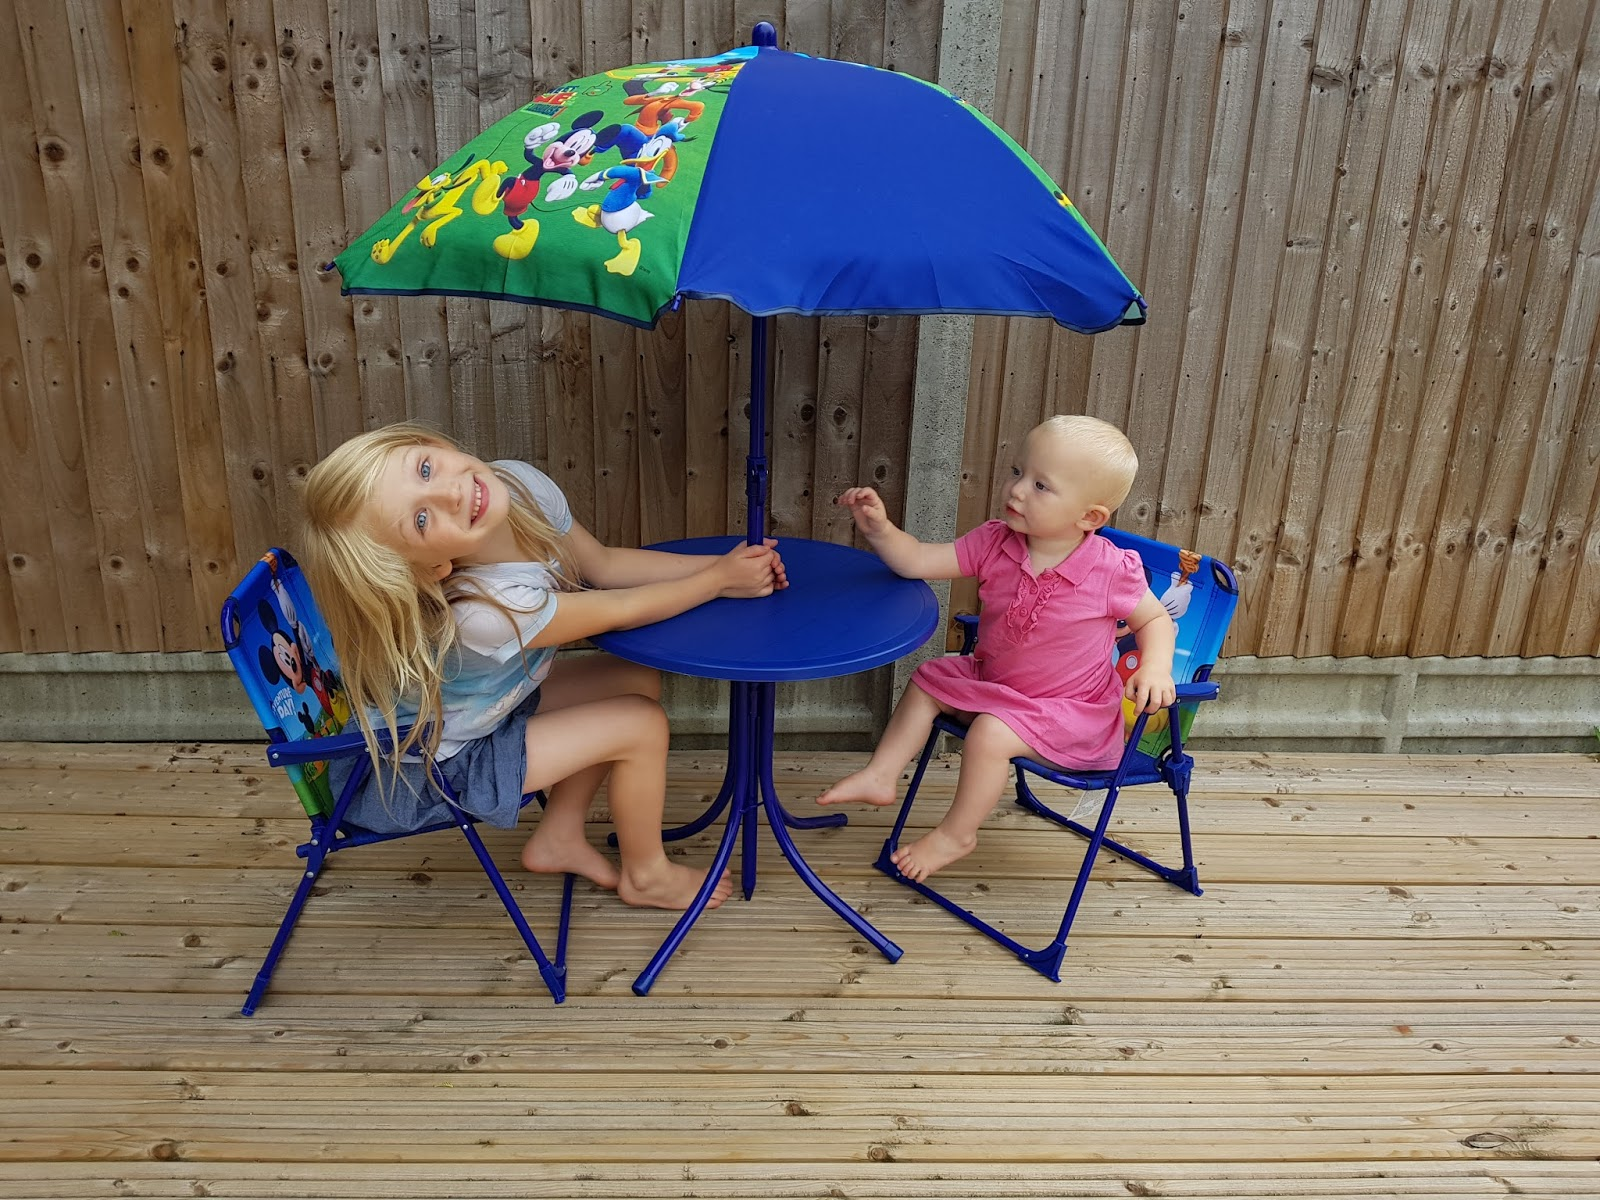 Tj Hughes Garden Furniture Review garden games with tj hughes counting to ten a blue disney mickey mouse childrens garden table chairs and umbrella with 2 girls sitting workwithnaturefo